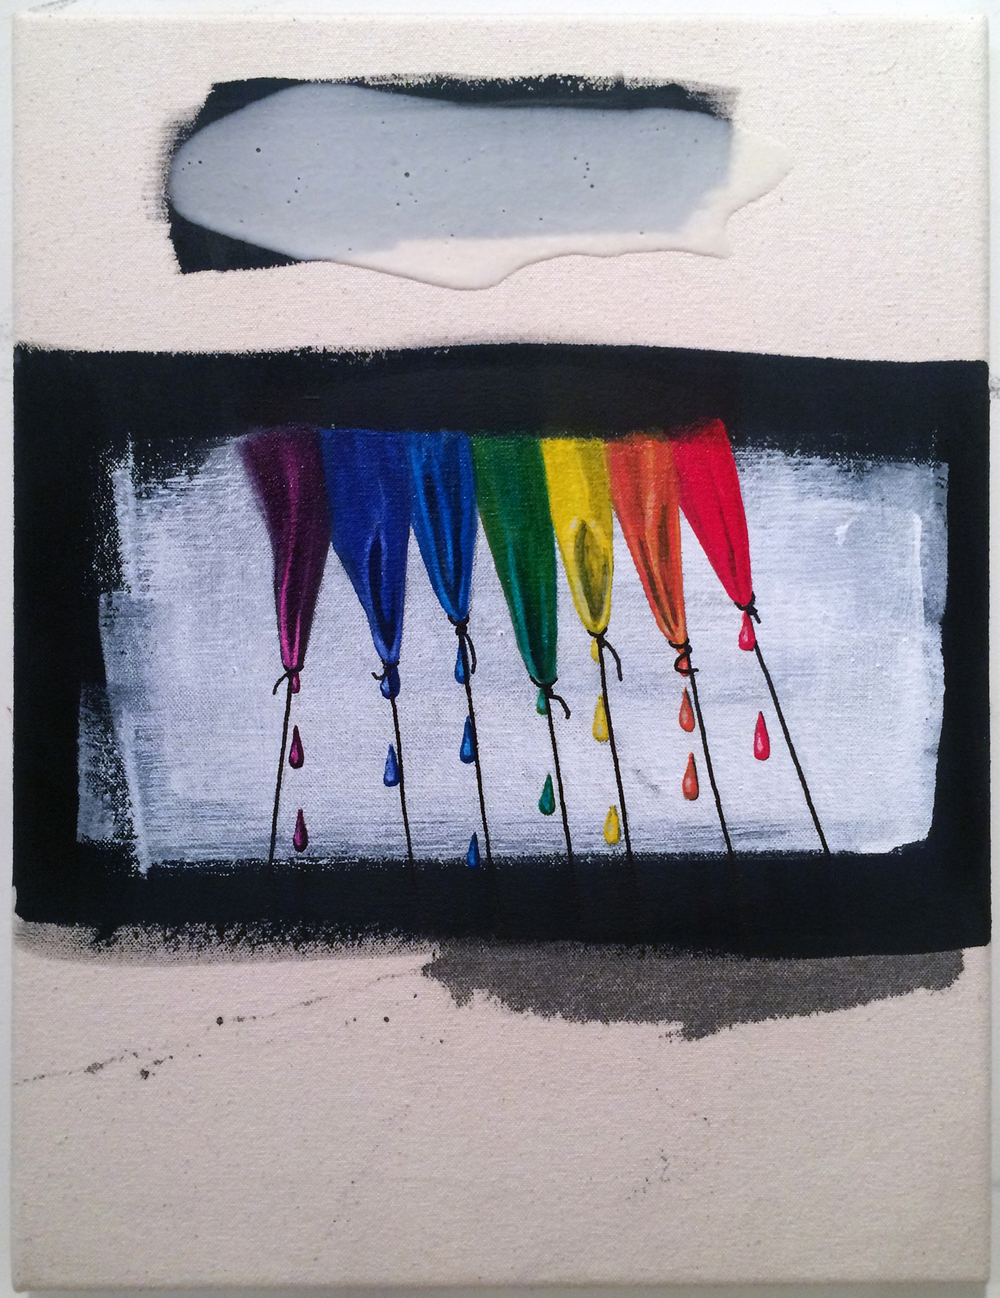 from  Atlas:  The Rainbow Goblins, 2016 Oil, acrylic, ink and gesso on canvas 12 x 16 inches